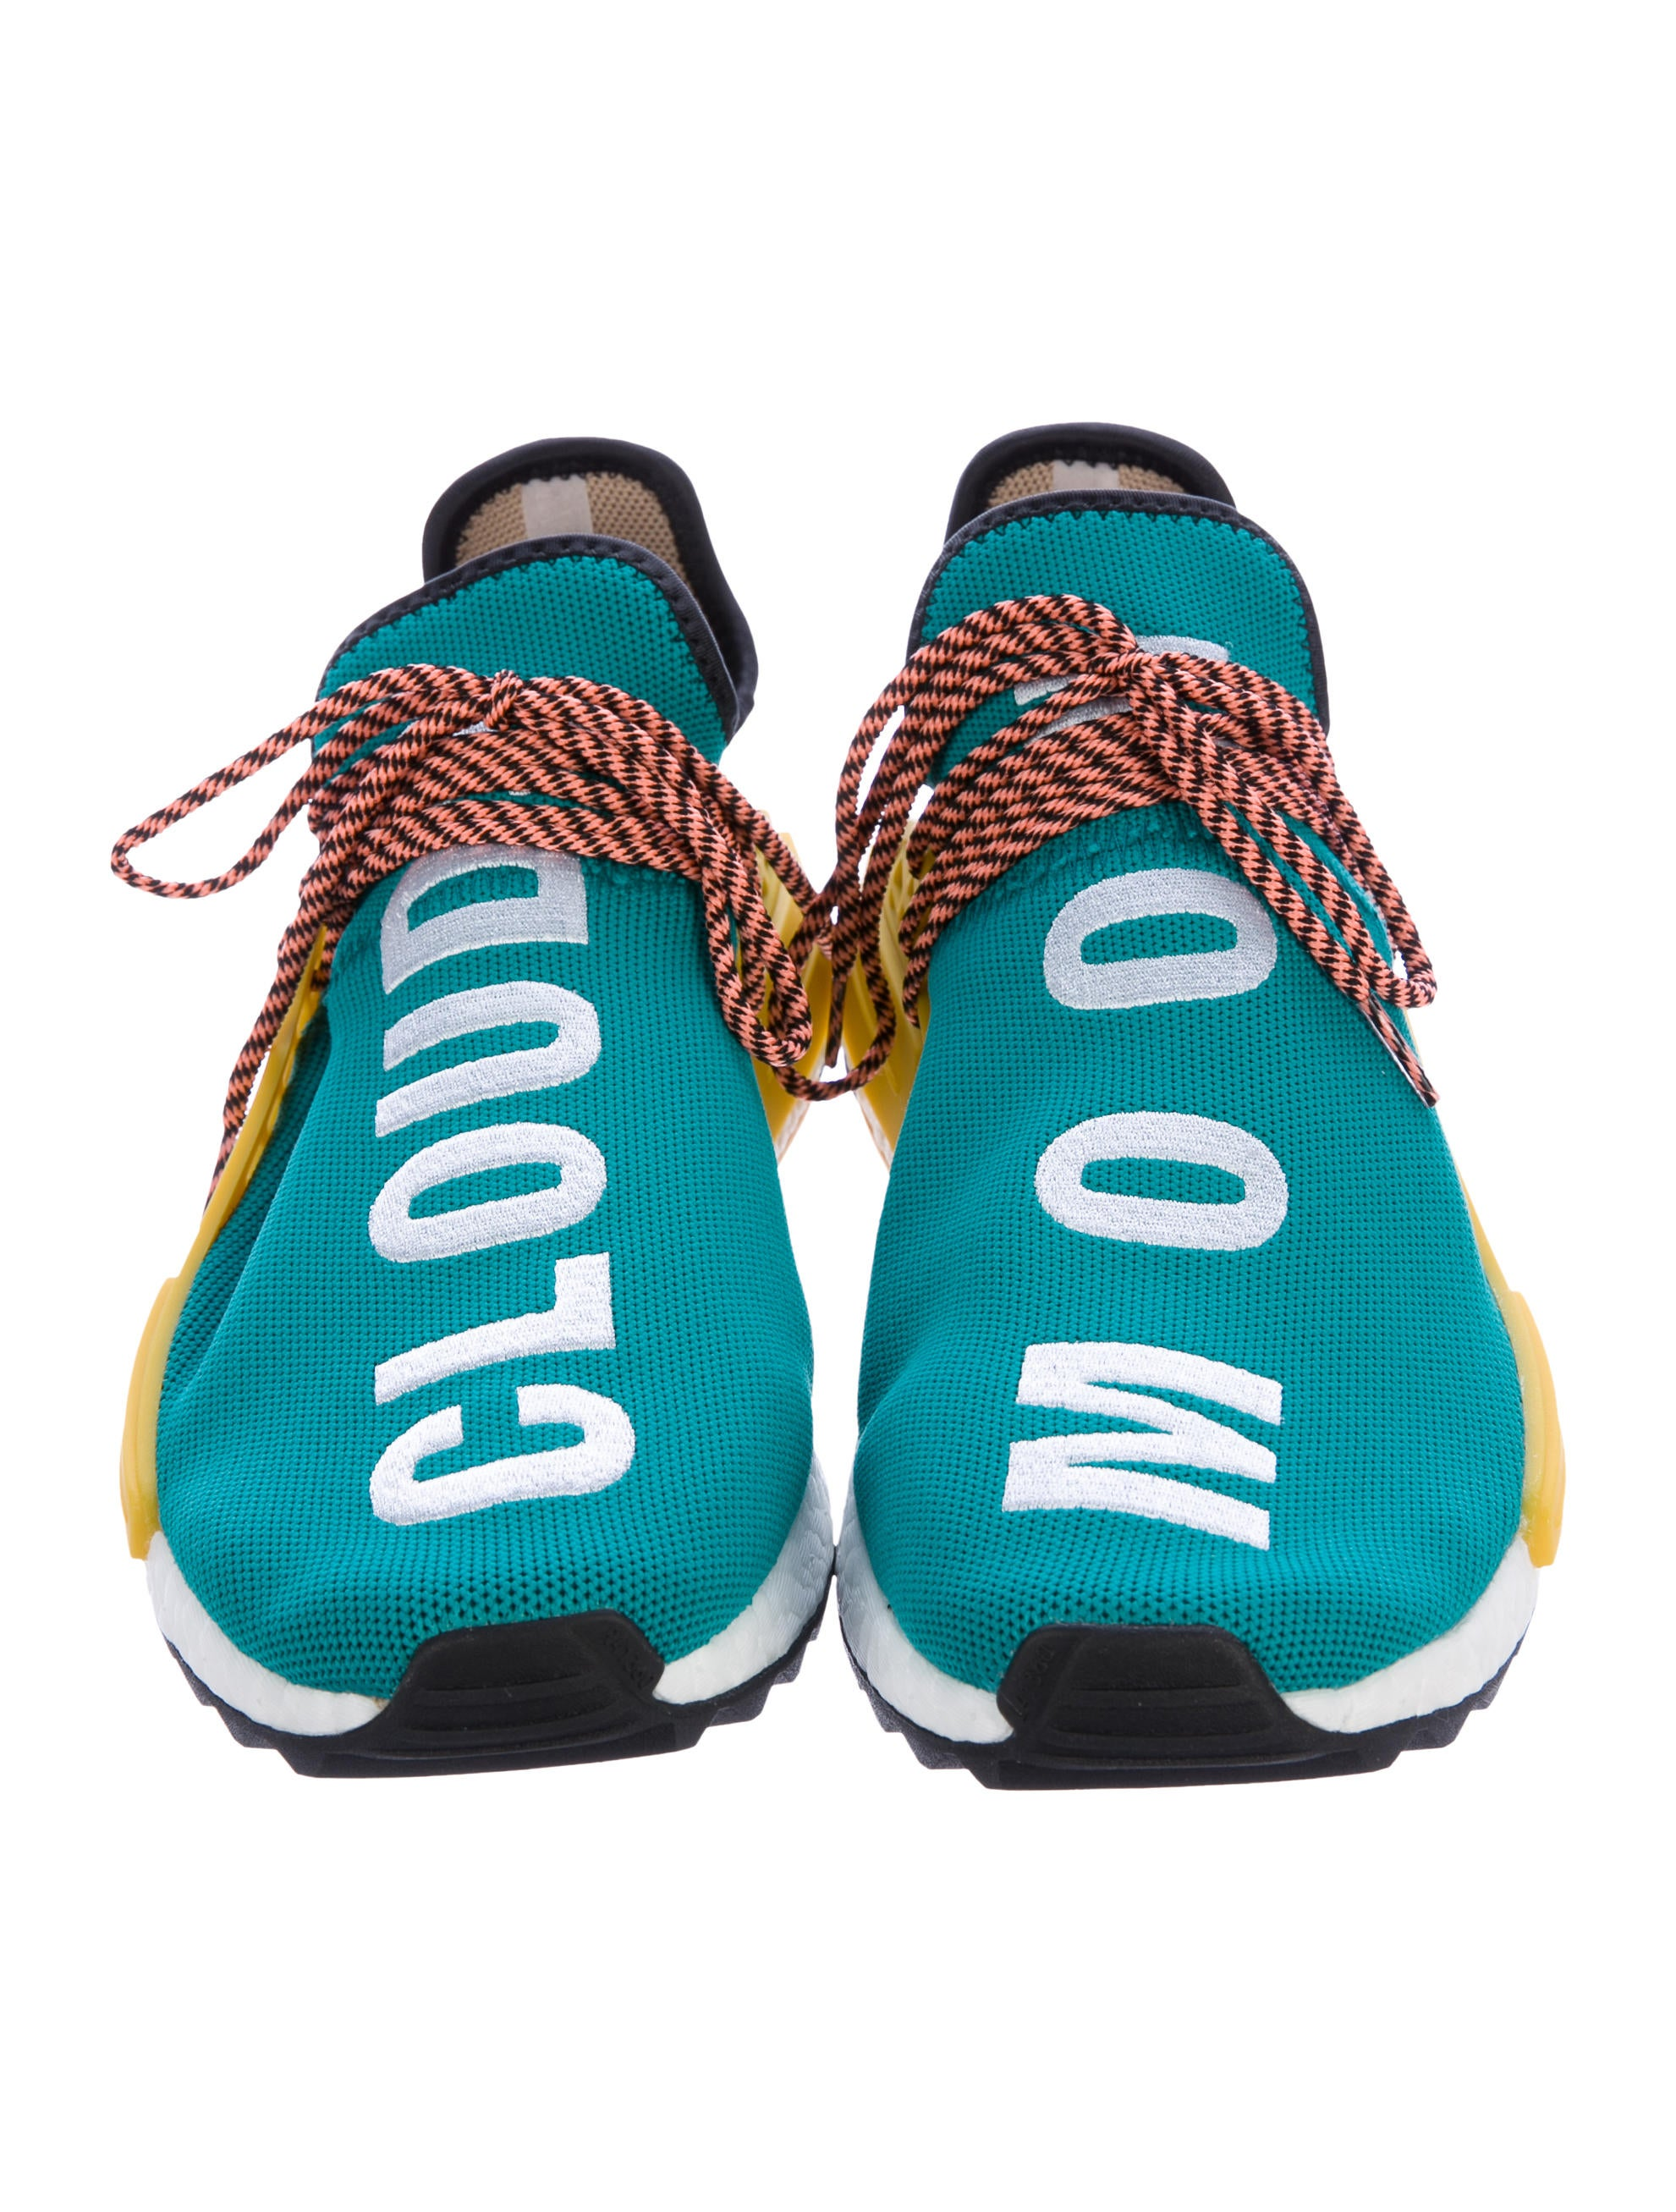 Pharrell Williams Shoes Human Race For Sale